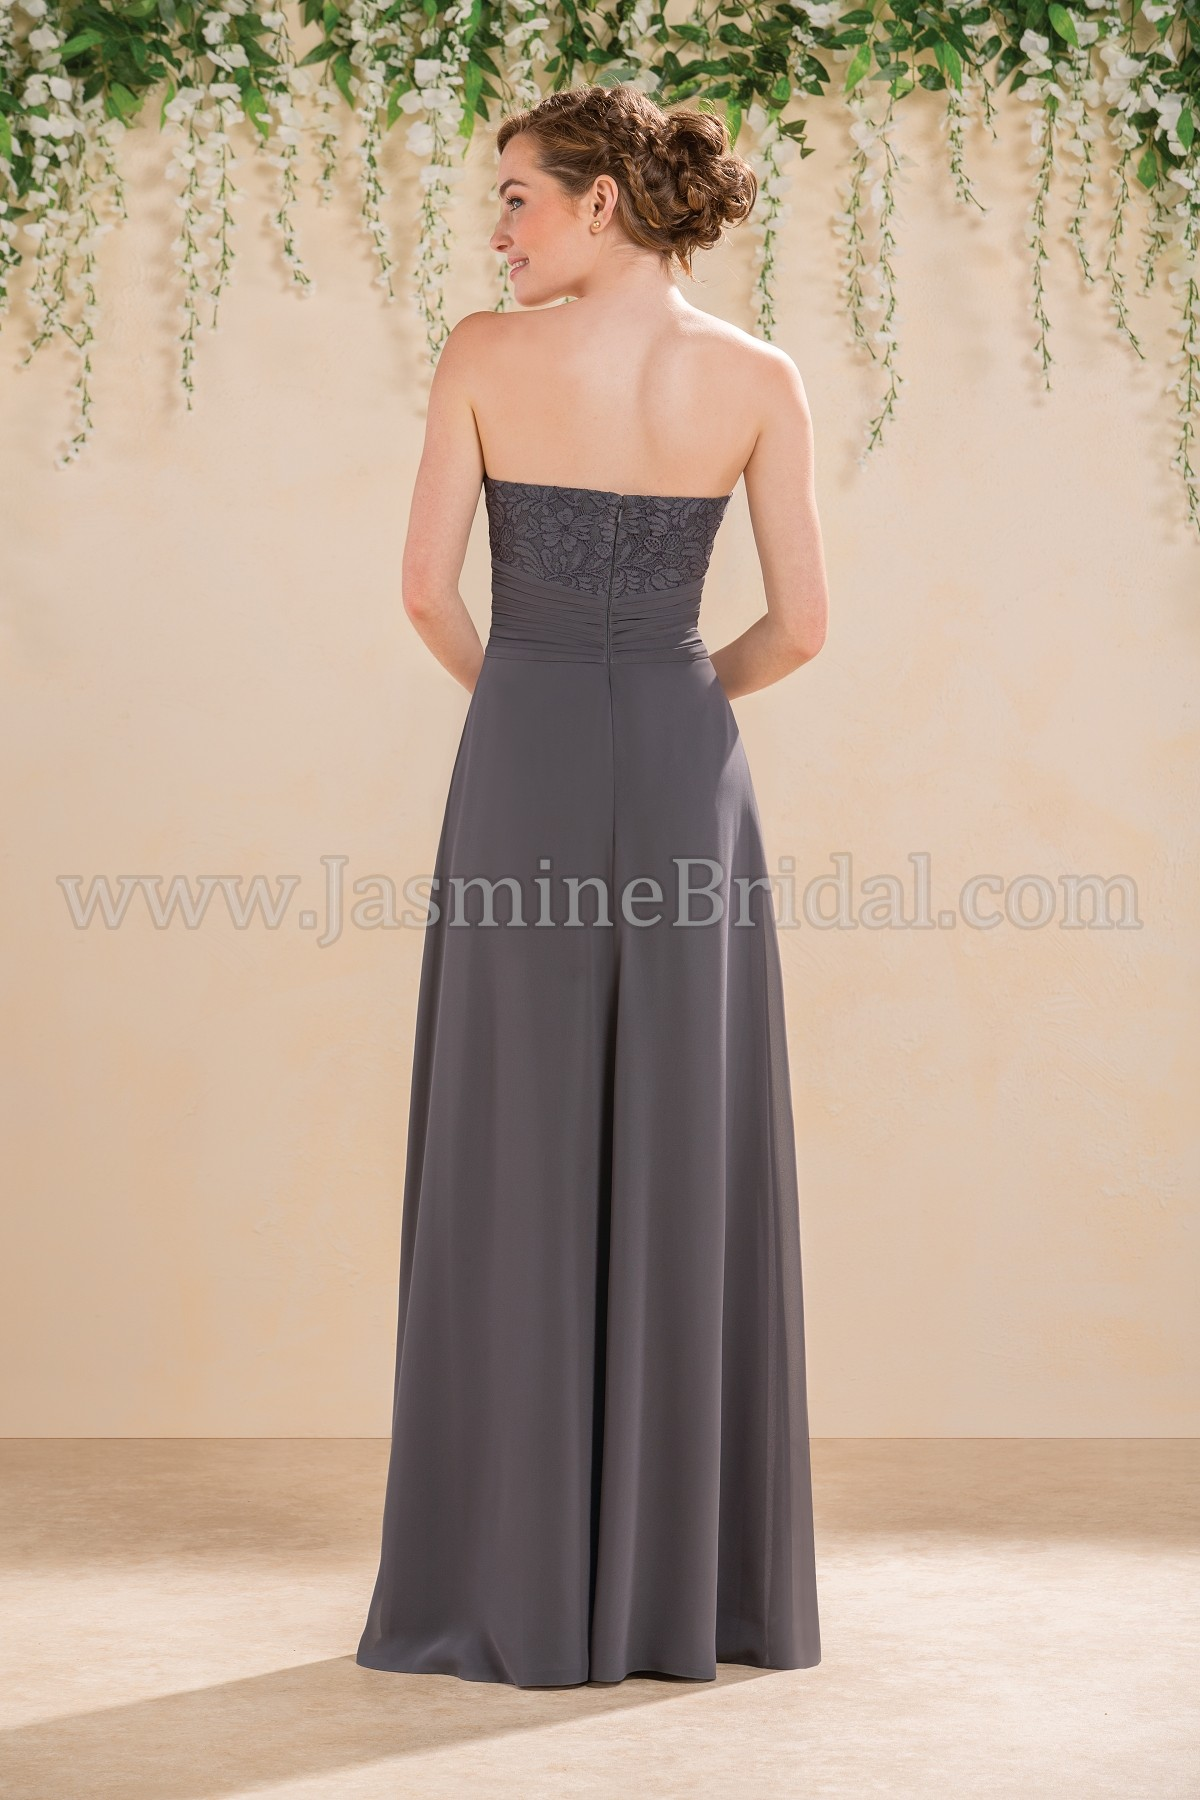 bridesmaid-dresses-B183015-B